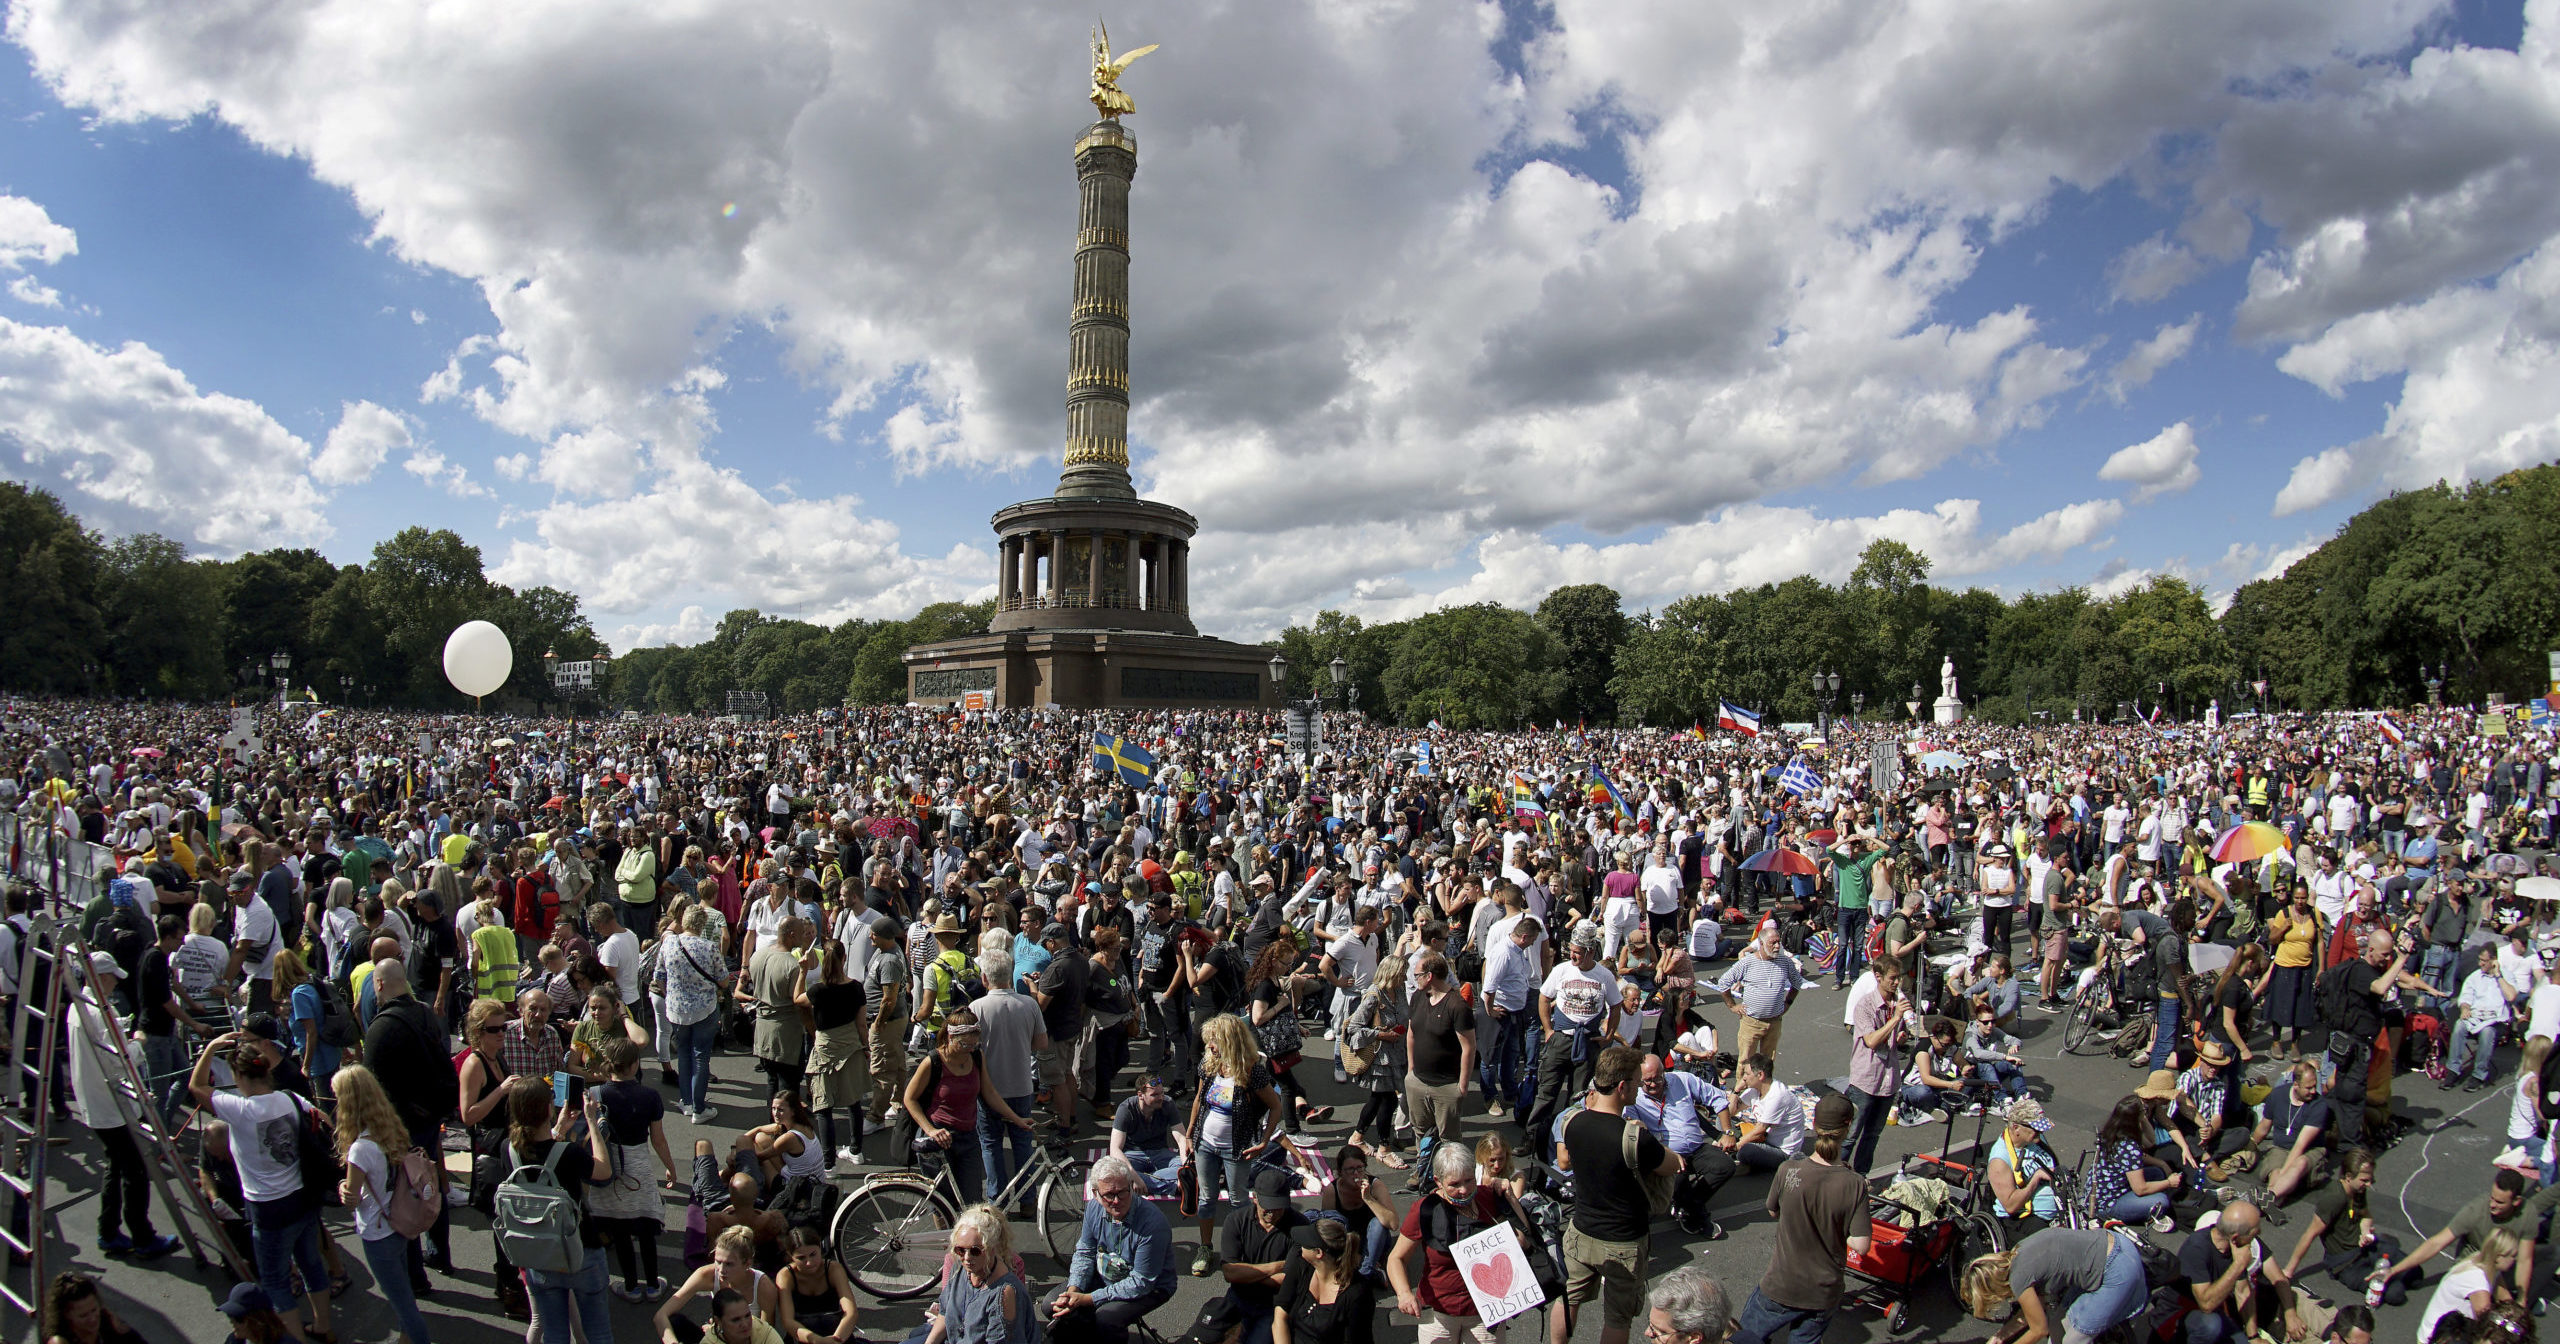 People attend a protest in Berlin, Germany, on Aug. 29, 2020, against new coronavirus restrictions in Germany.